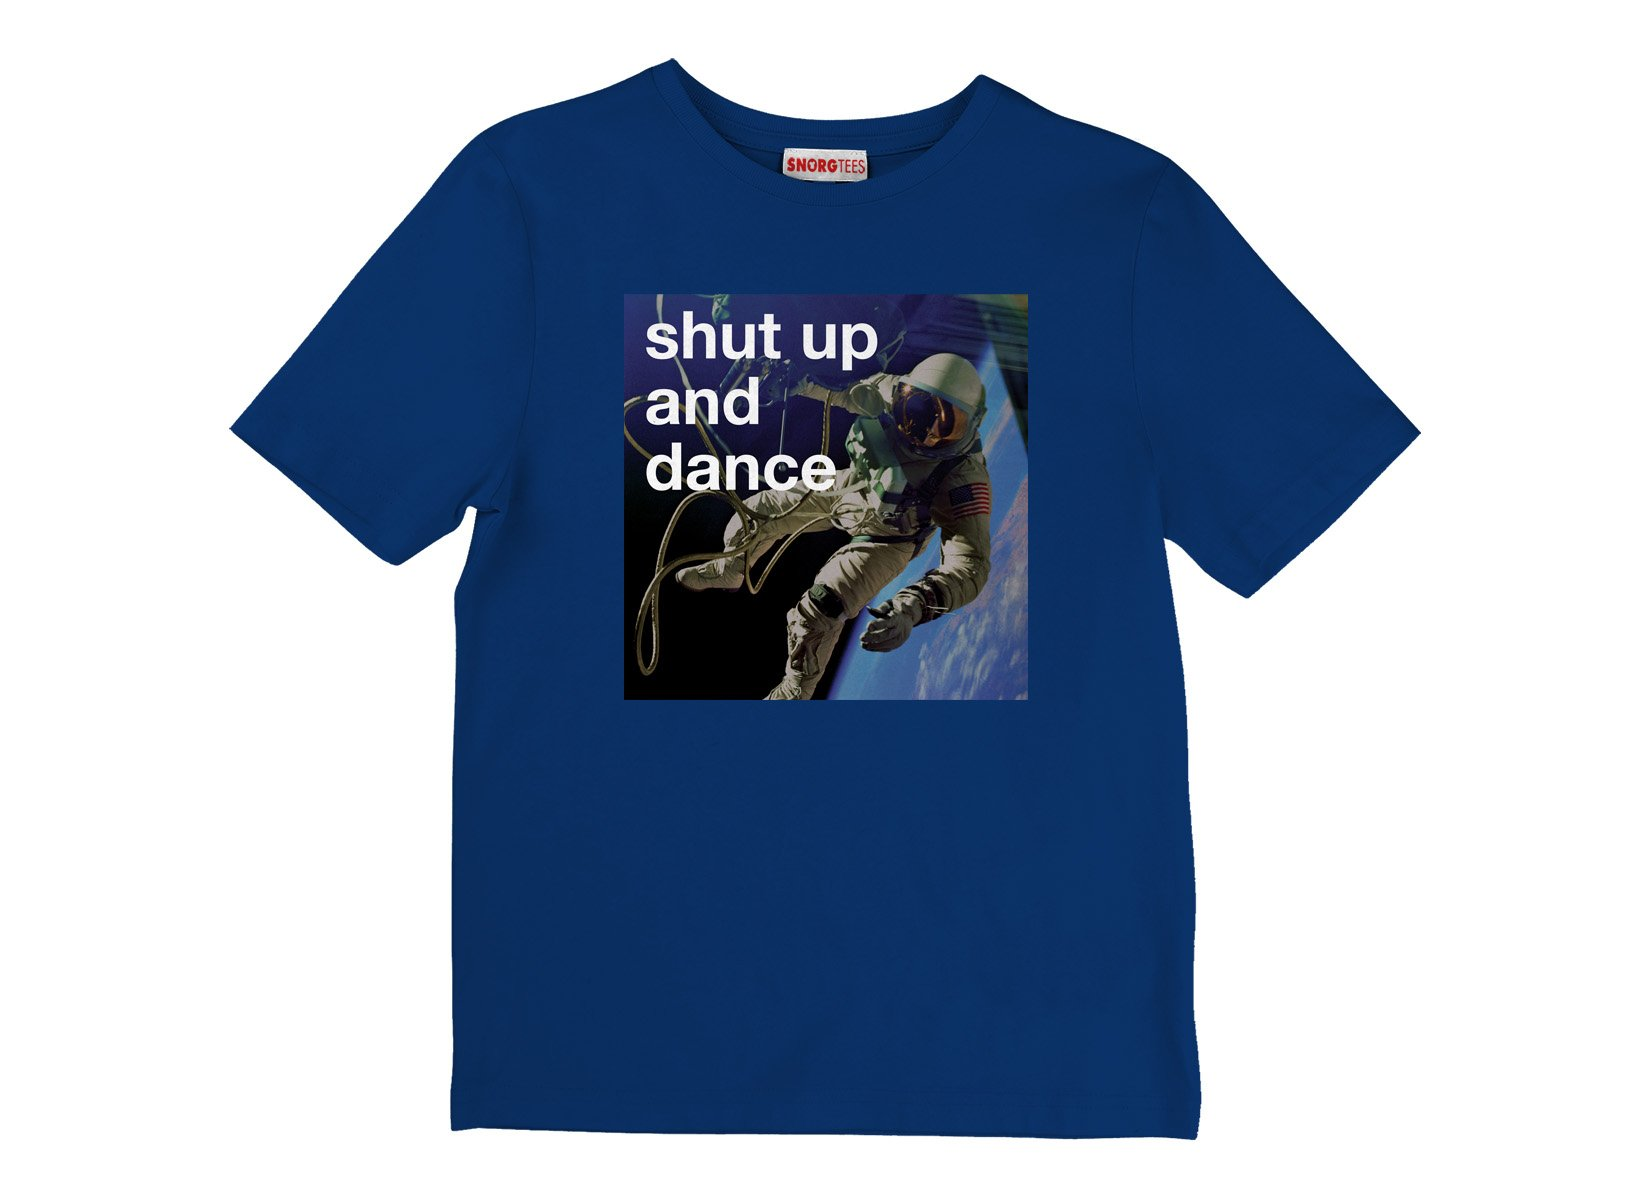 Shut Up And Dance on Kids T-Shirt